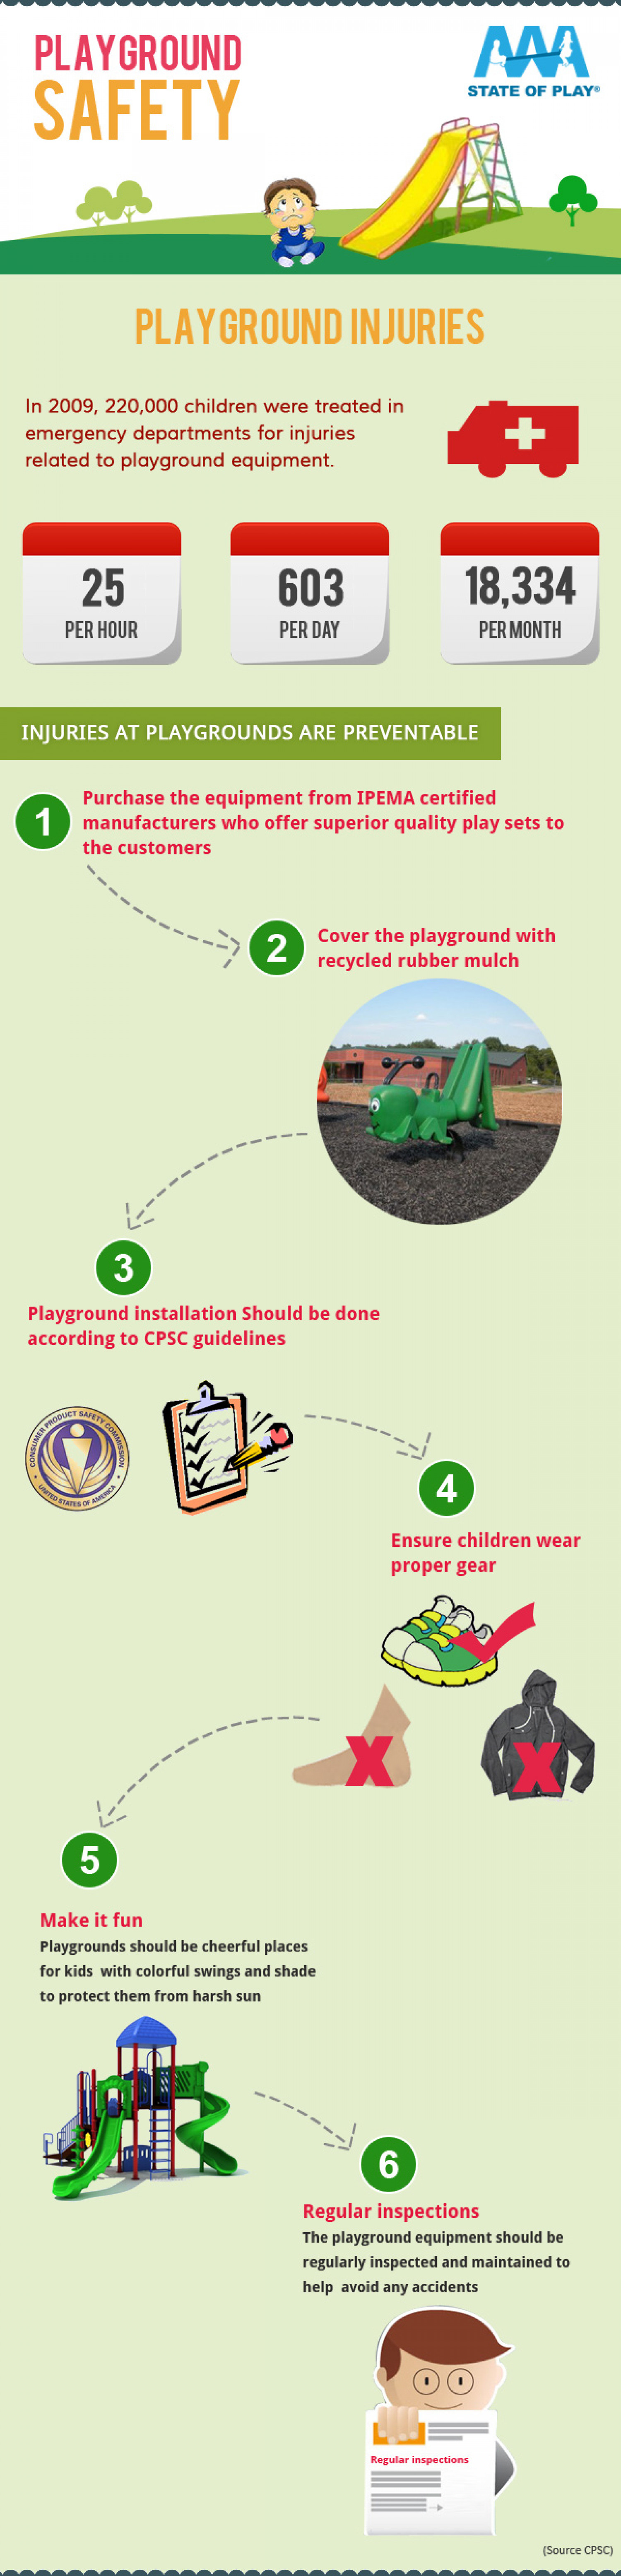 Playground Safety for Children Infographic